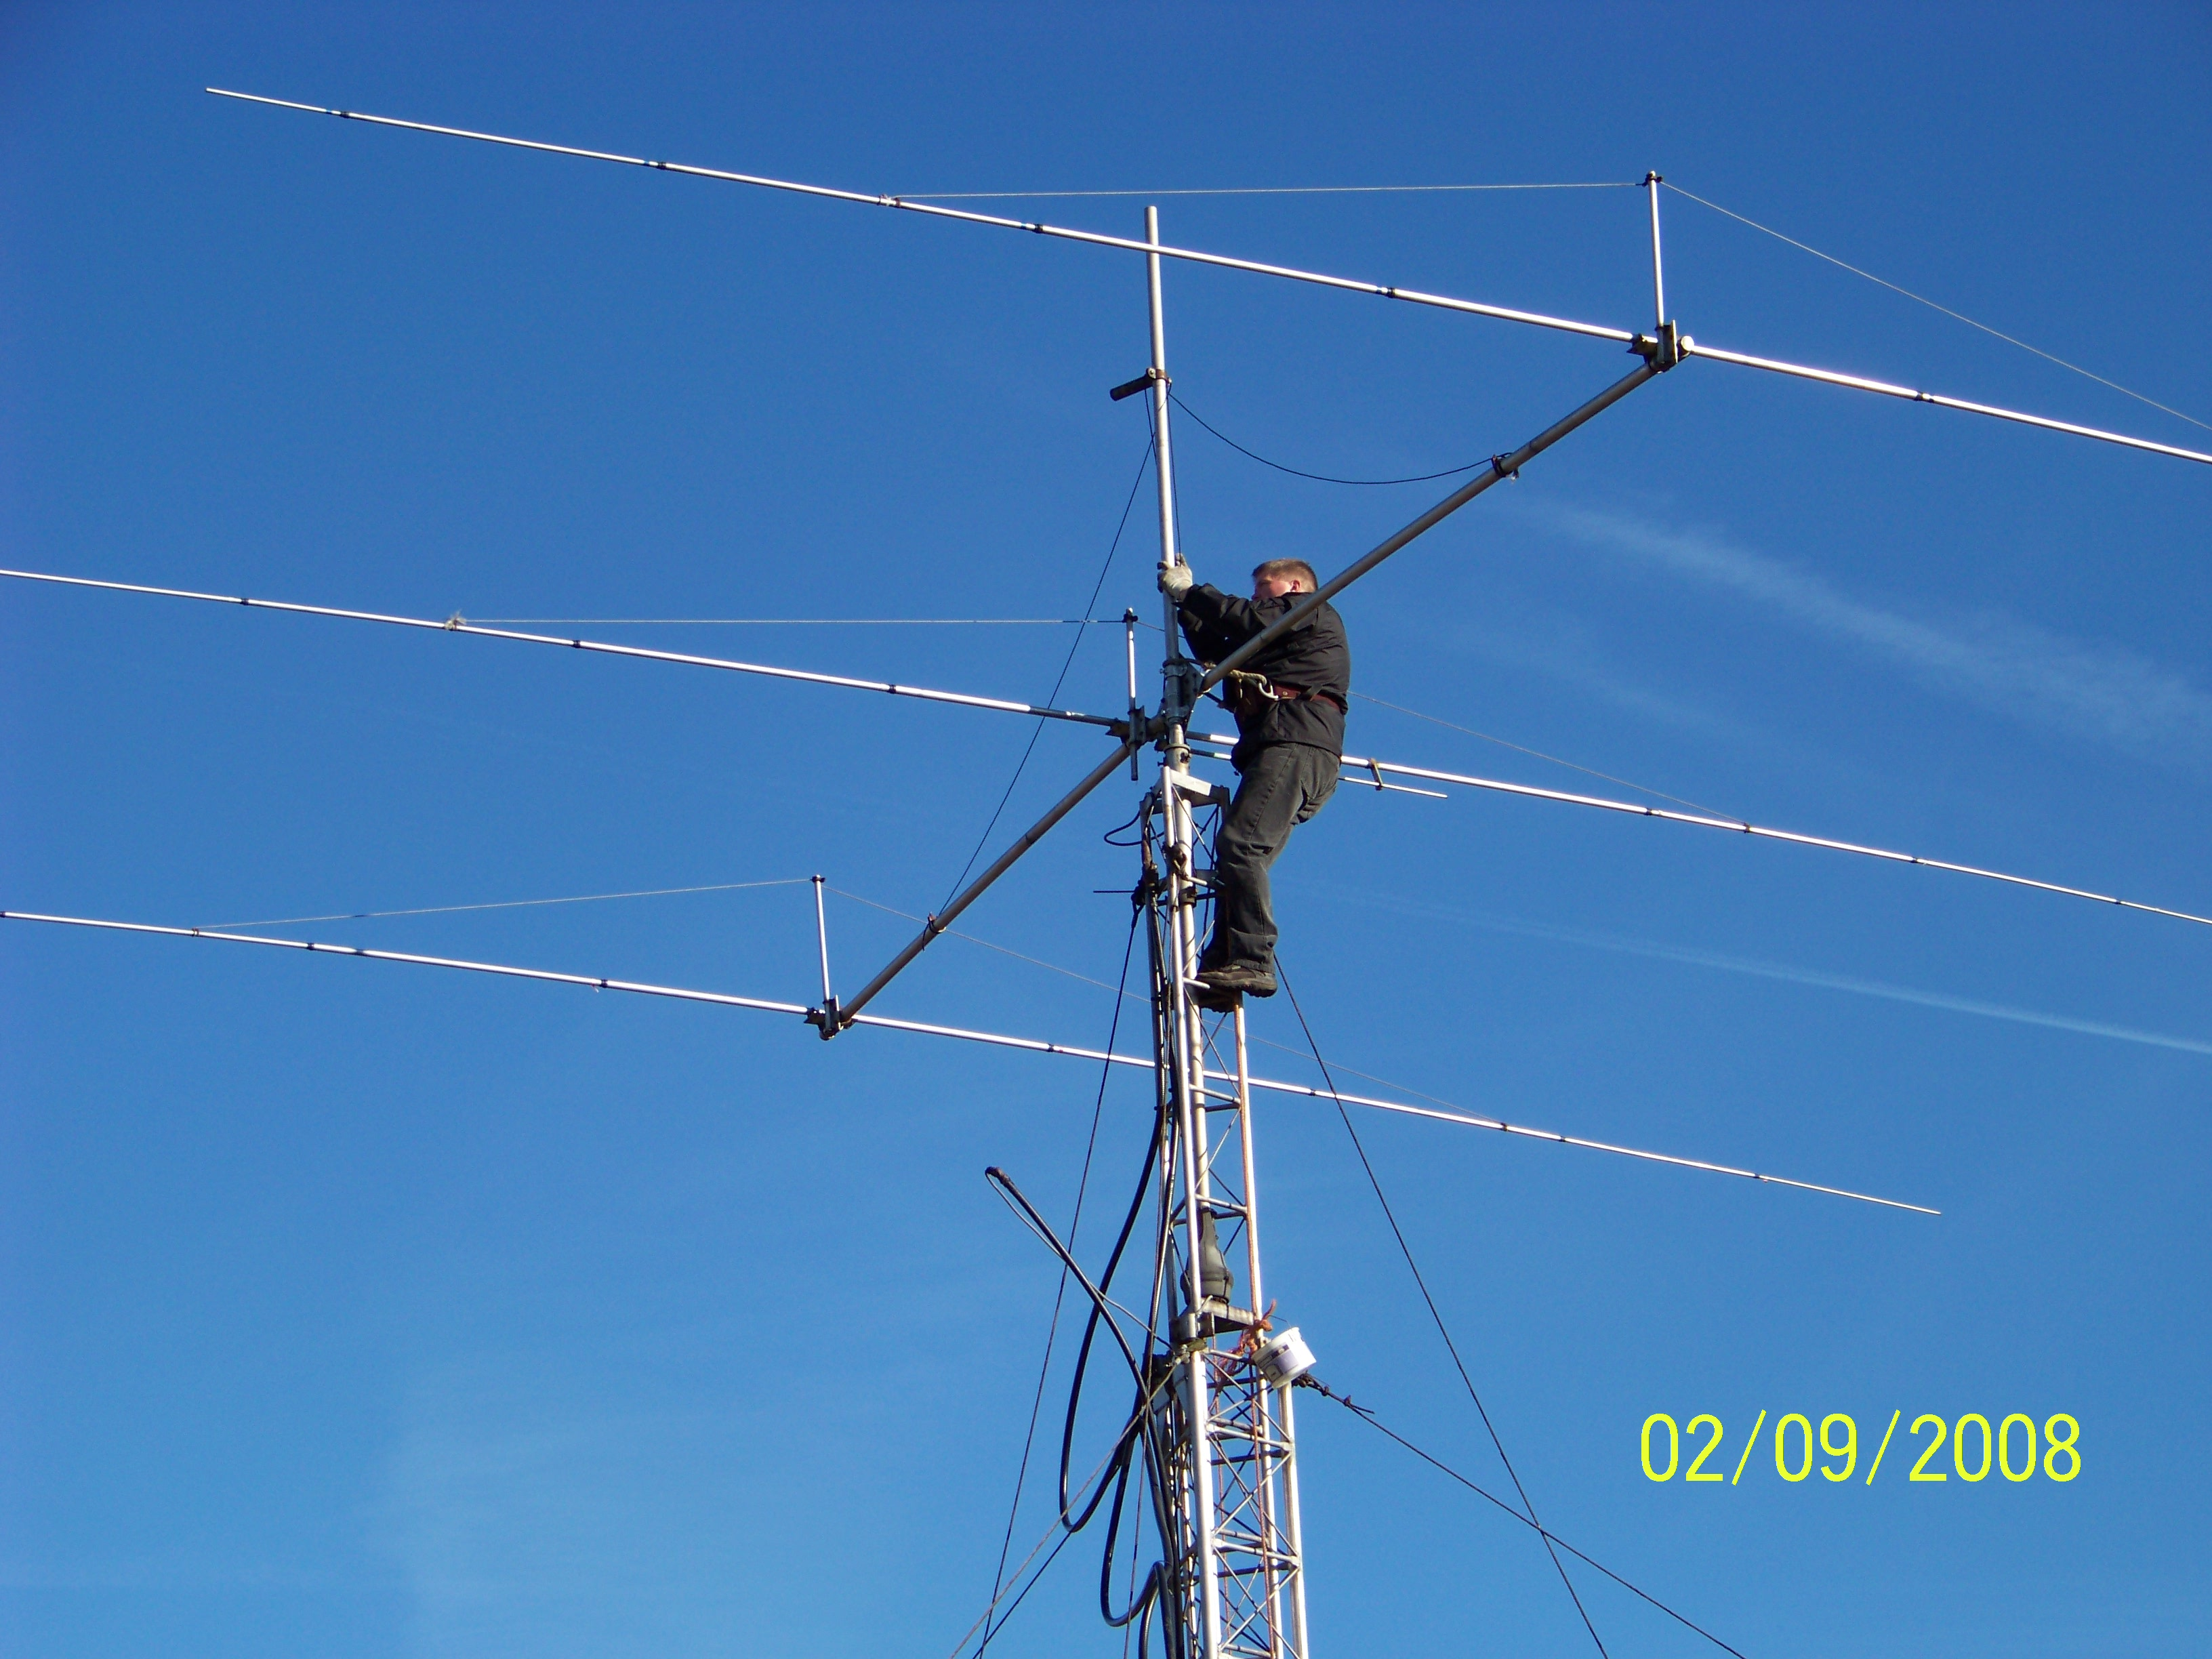 100_0088.jpg - Alex PA1AW trying to repair the 3 el. 20m yagi